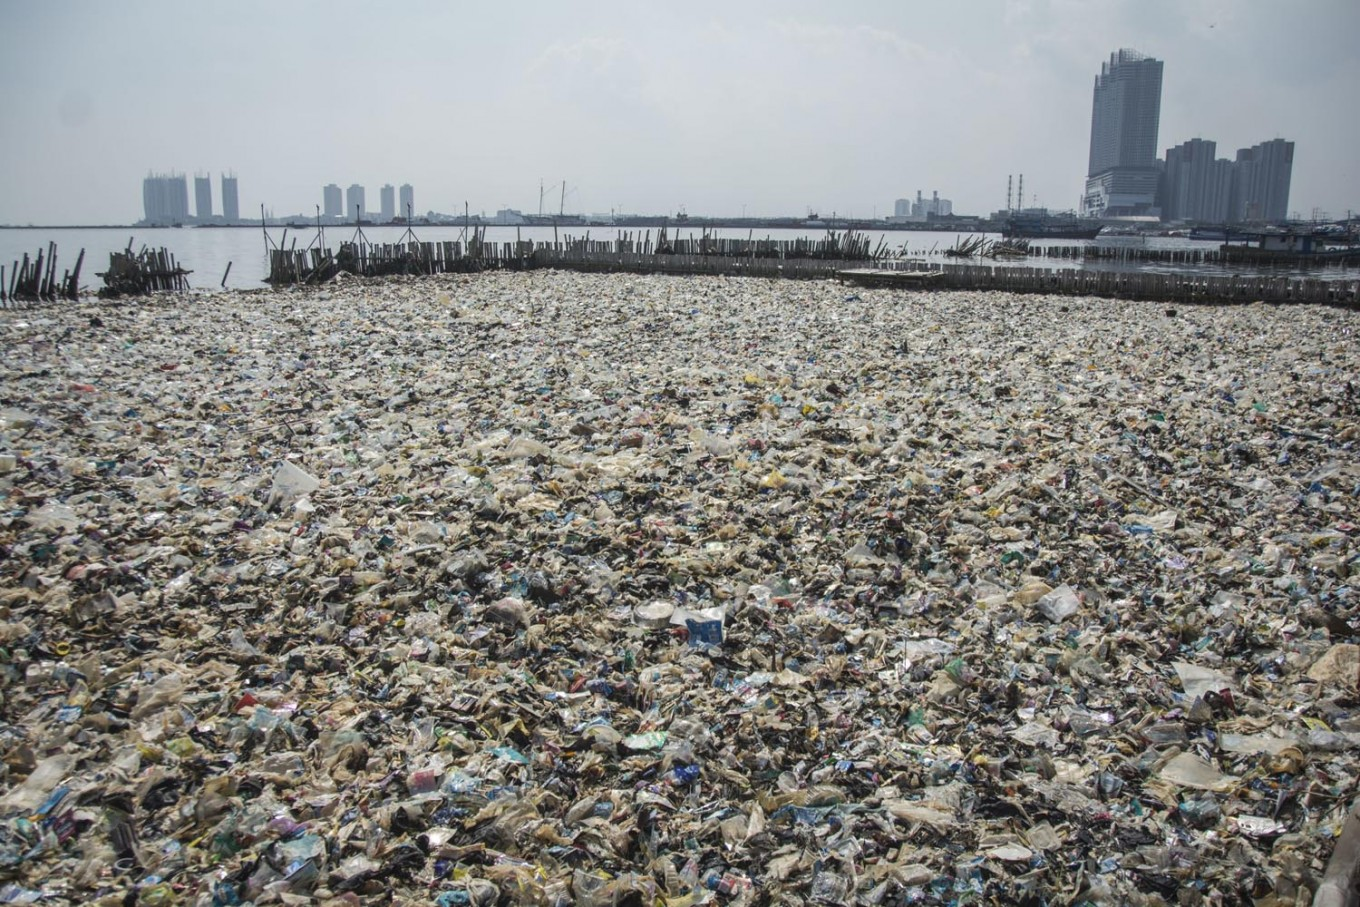 Jakarta generates up to 2,400 tons of plastic waste daily